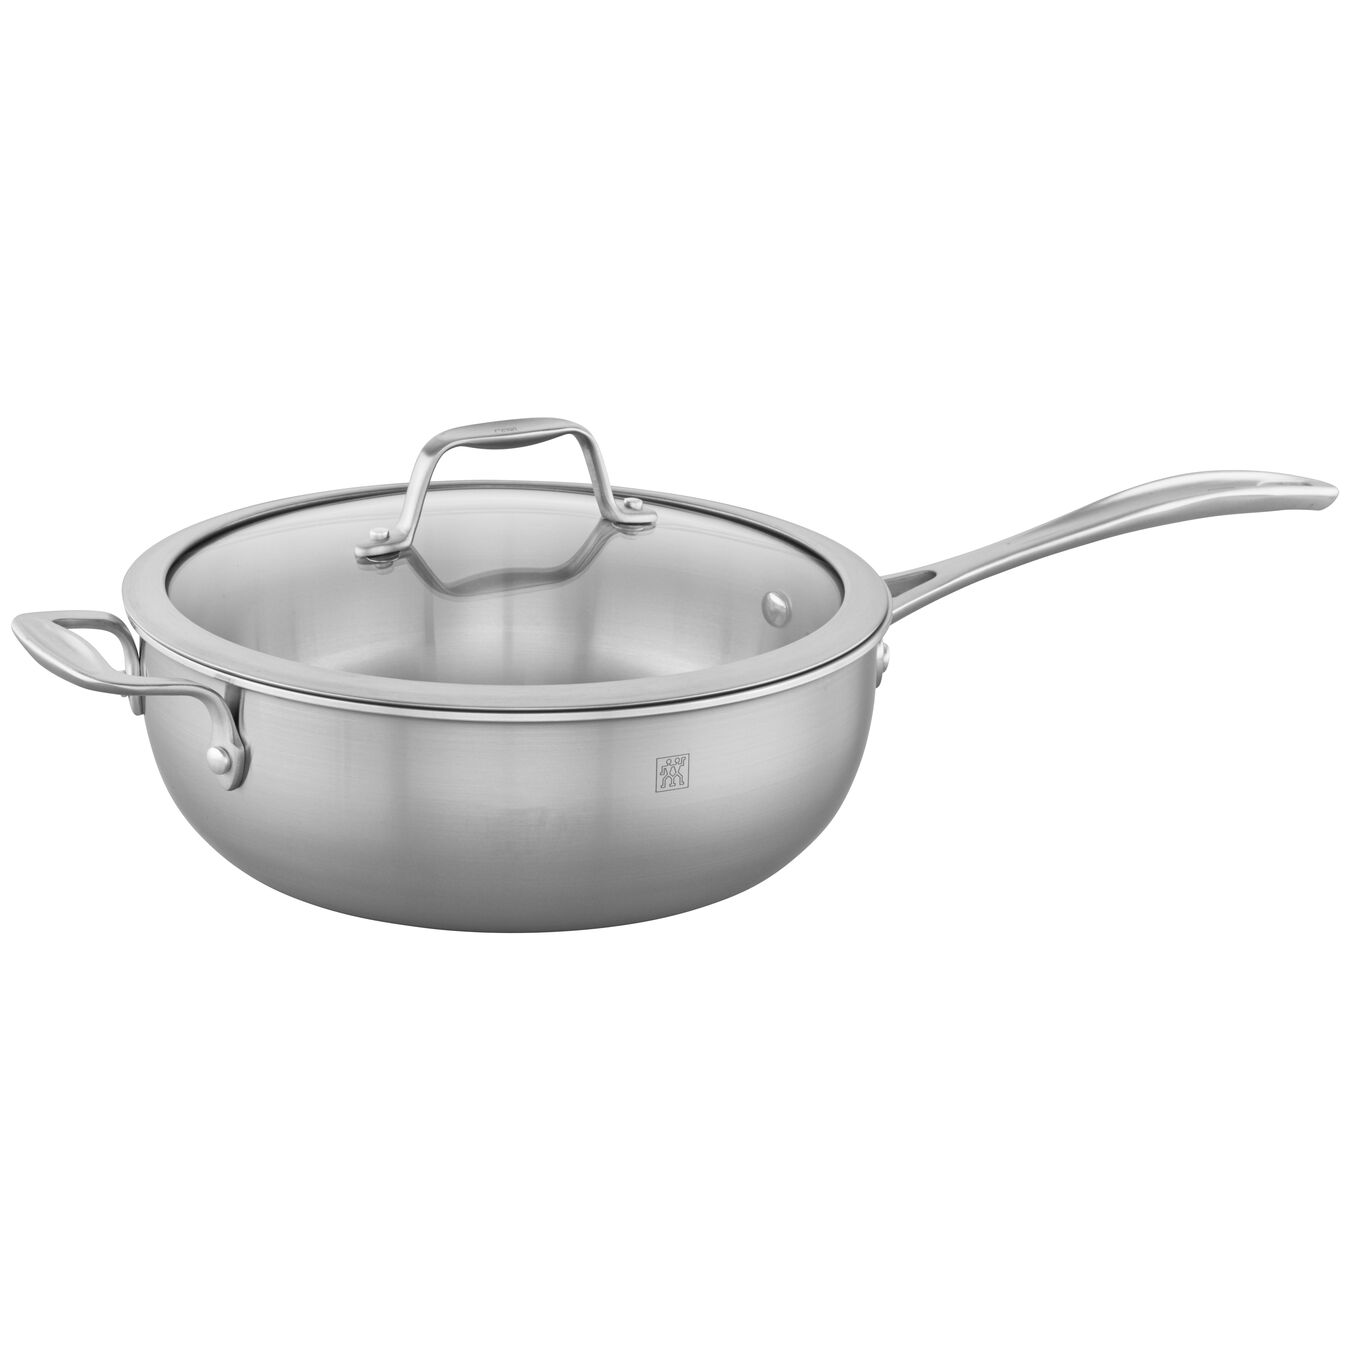 3-ply 4.6-qt Stainless Steel Perfect Pan,,large 1